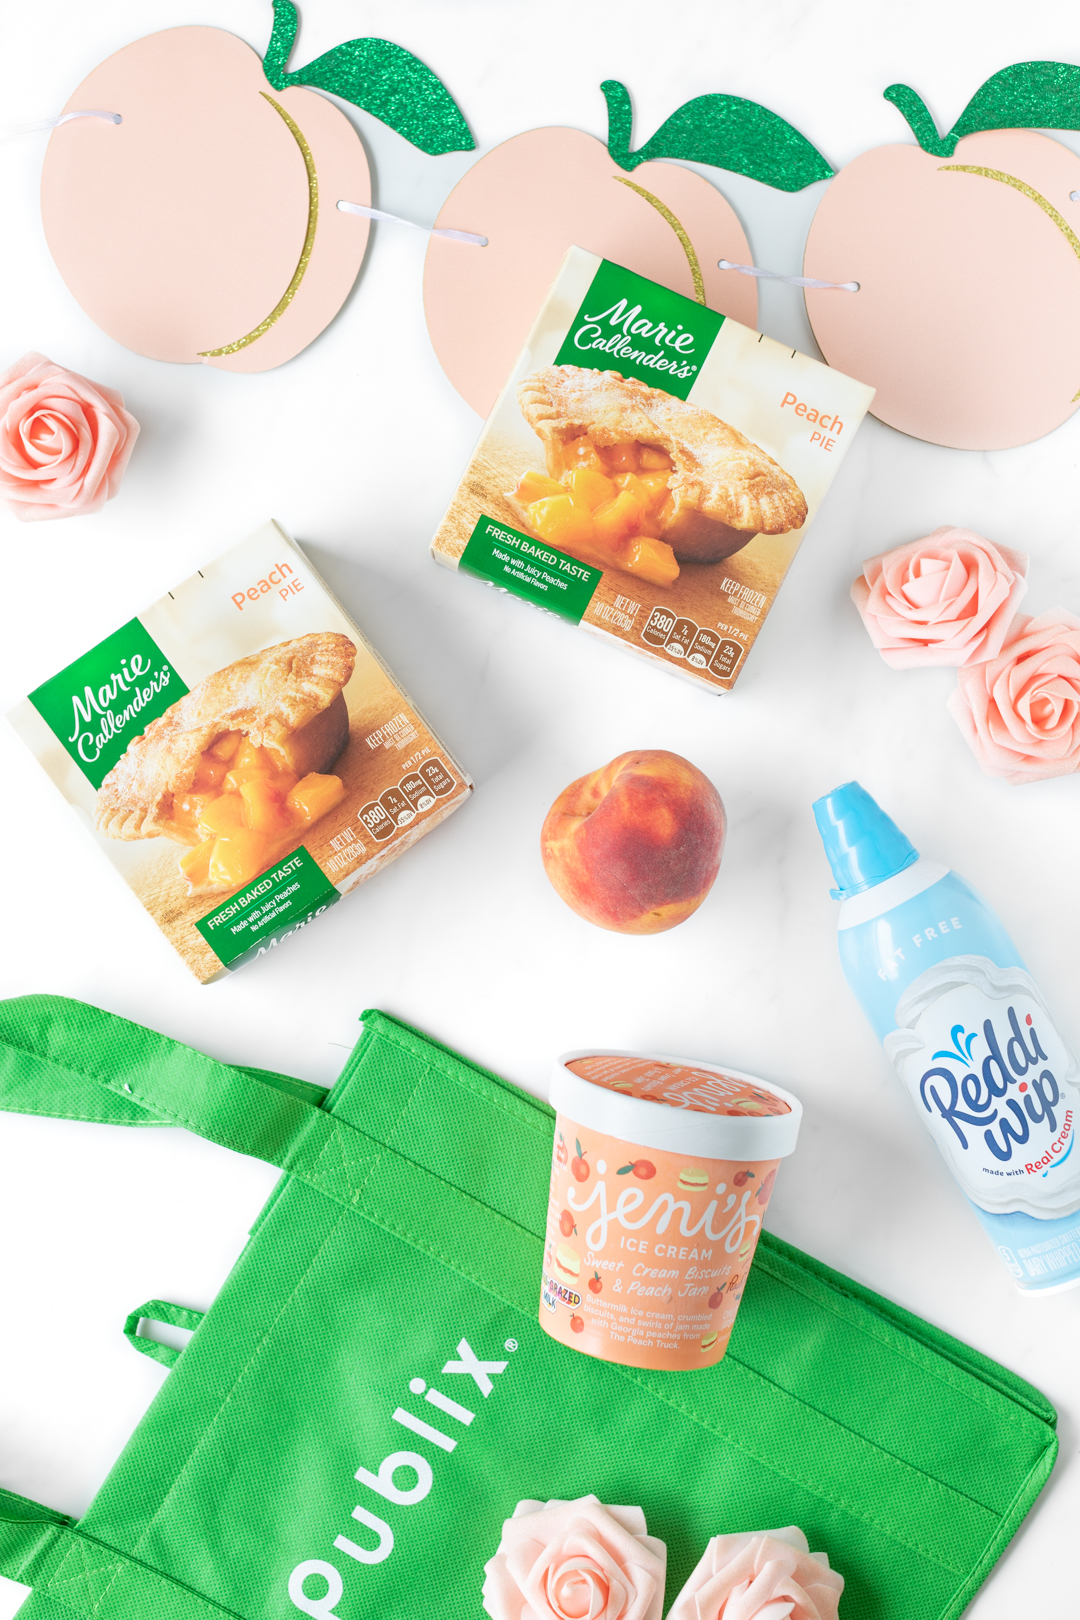 publix shopping bag with groceries including Jeni's ice cream, marie callendar's peach pies and Reddi-whip.